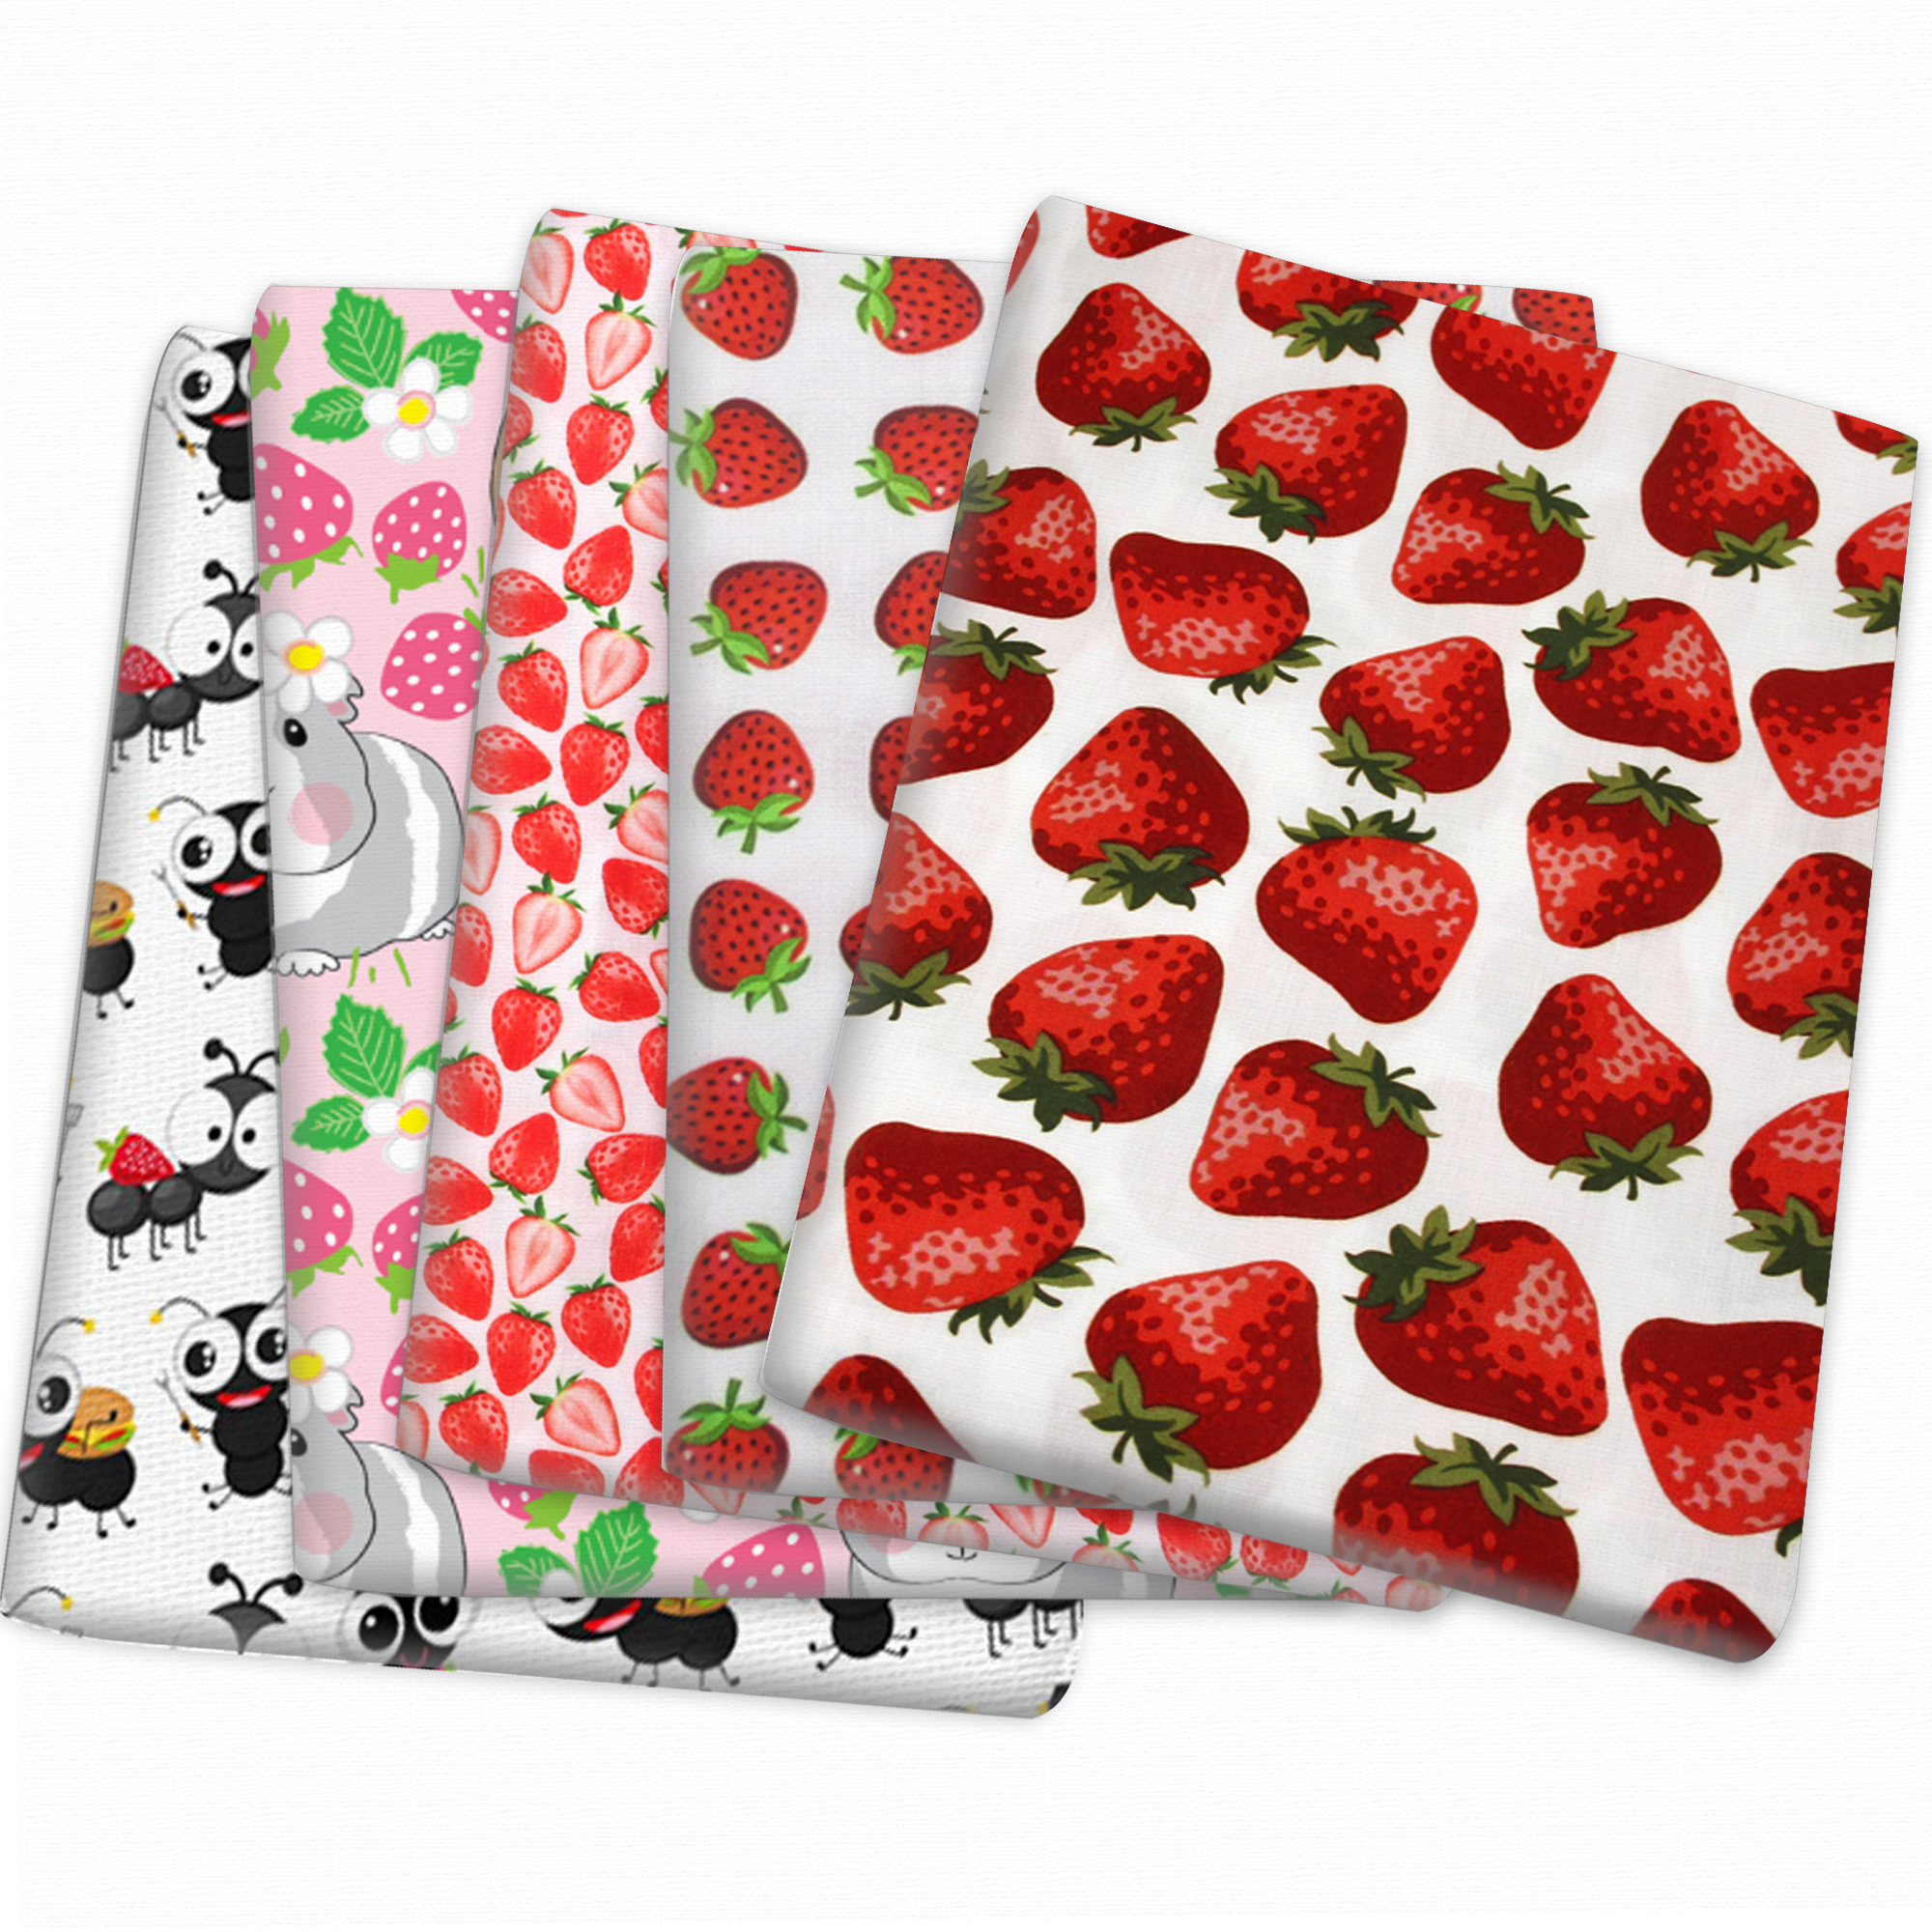 Strawberry Polyester Cotton Fabric Patchwork For Tissue Kid Home Textile Sewing Doll Dress Curtain,1yc14344